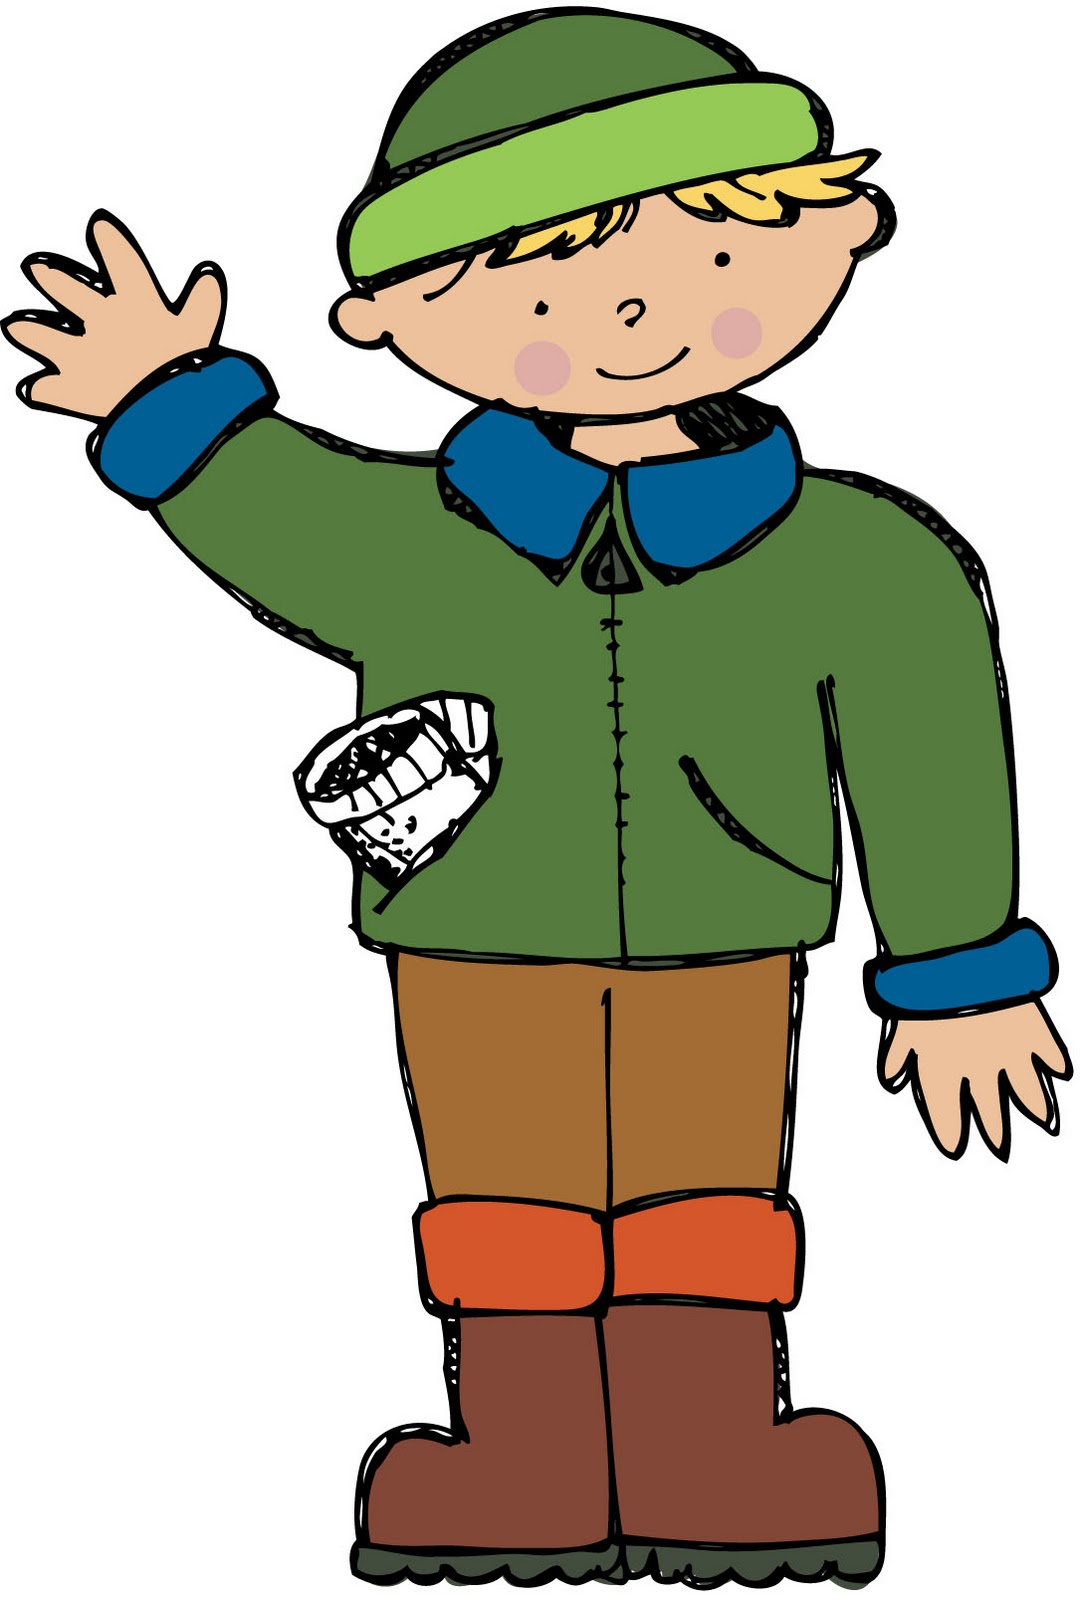 Boy wearing mittens clipart picture royalty free Free Green Mitten Cliparts, Download Free Clip Art, Free Clip Art on ... picture royalty free